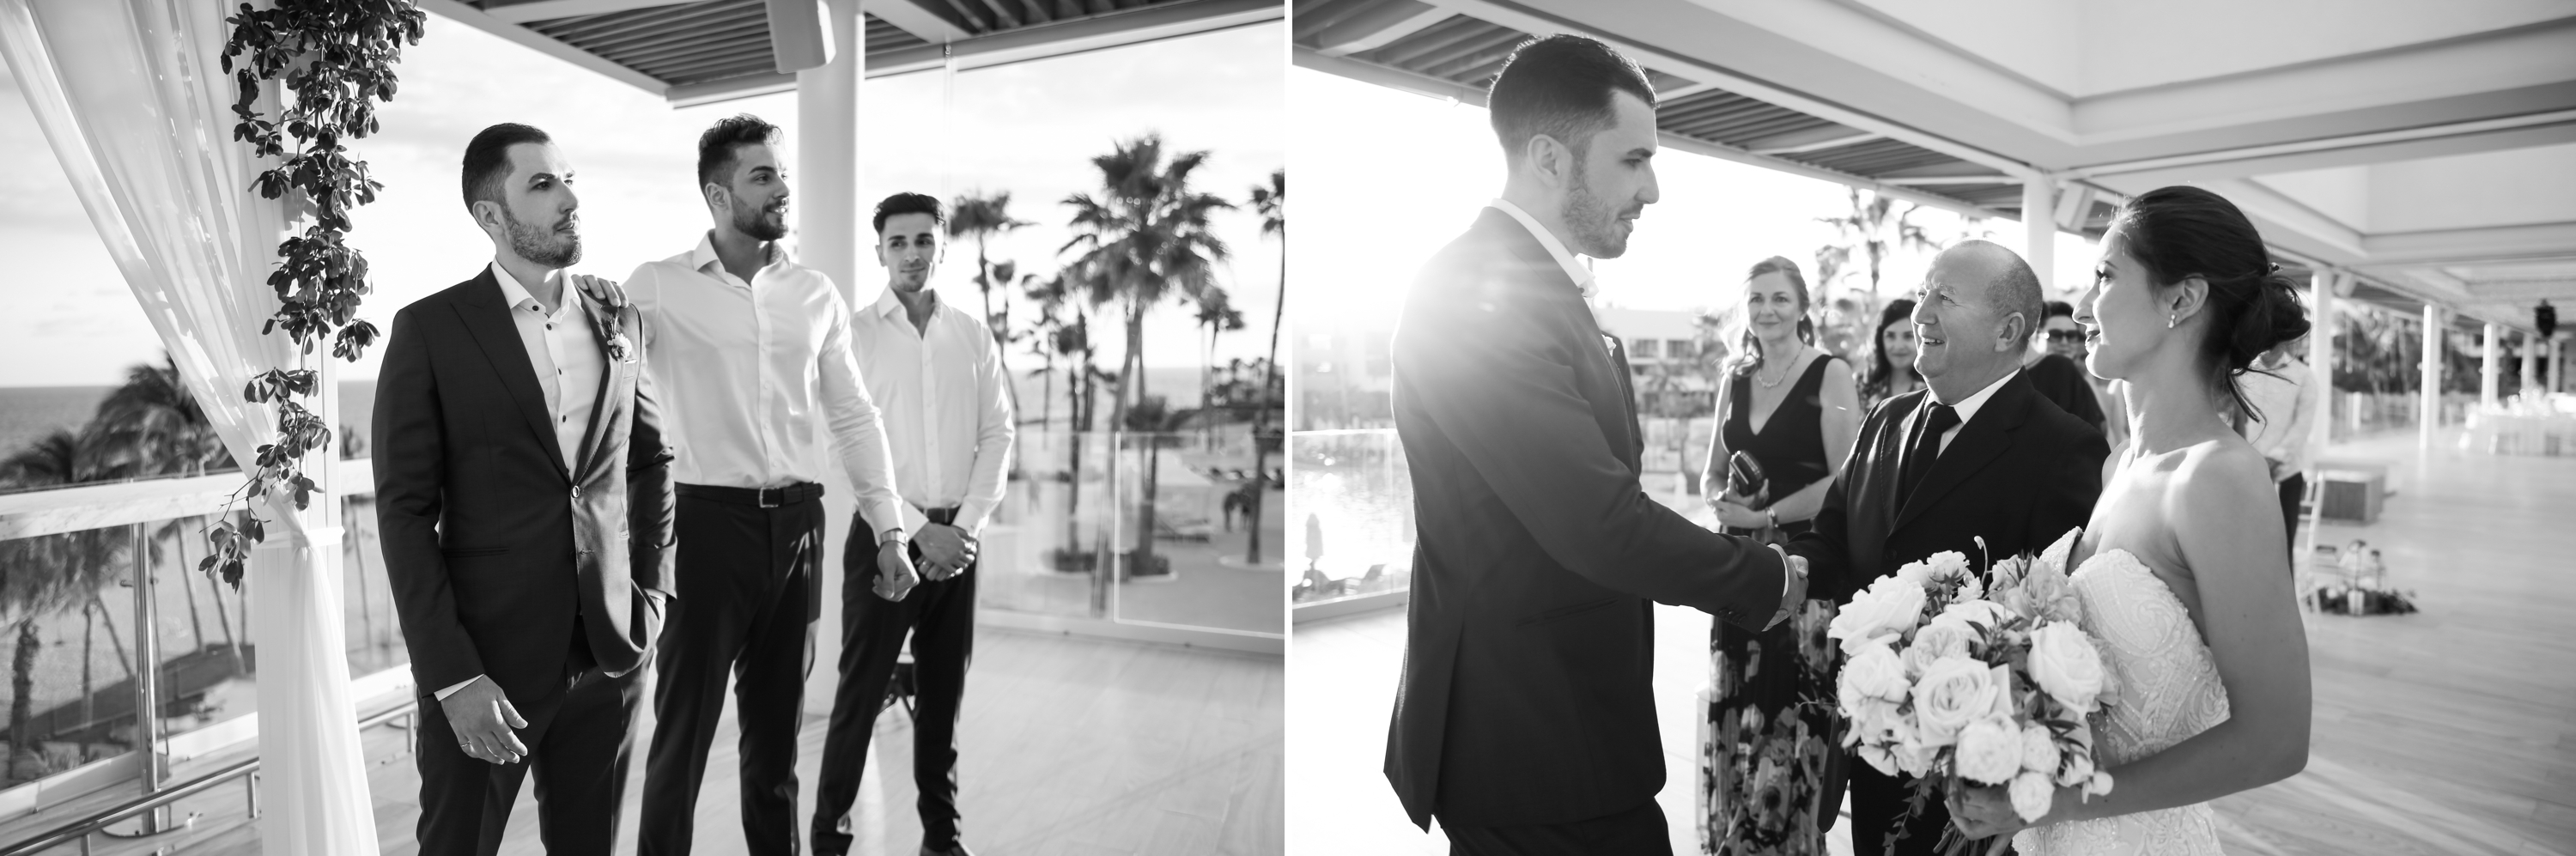 Ceremony Black and White Paradisus Mexico Los Cabos Sea of Cortez Zsuzsi Pal Photography Destination Wedding